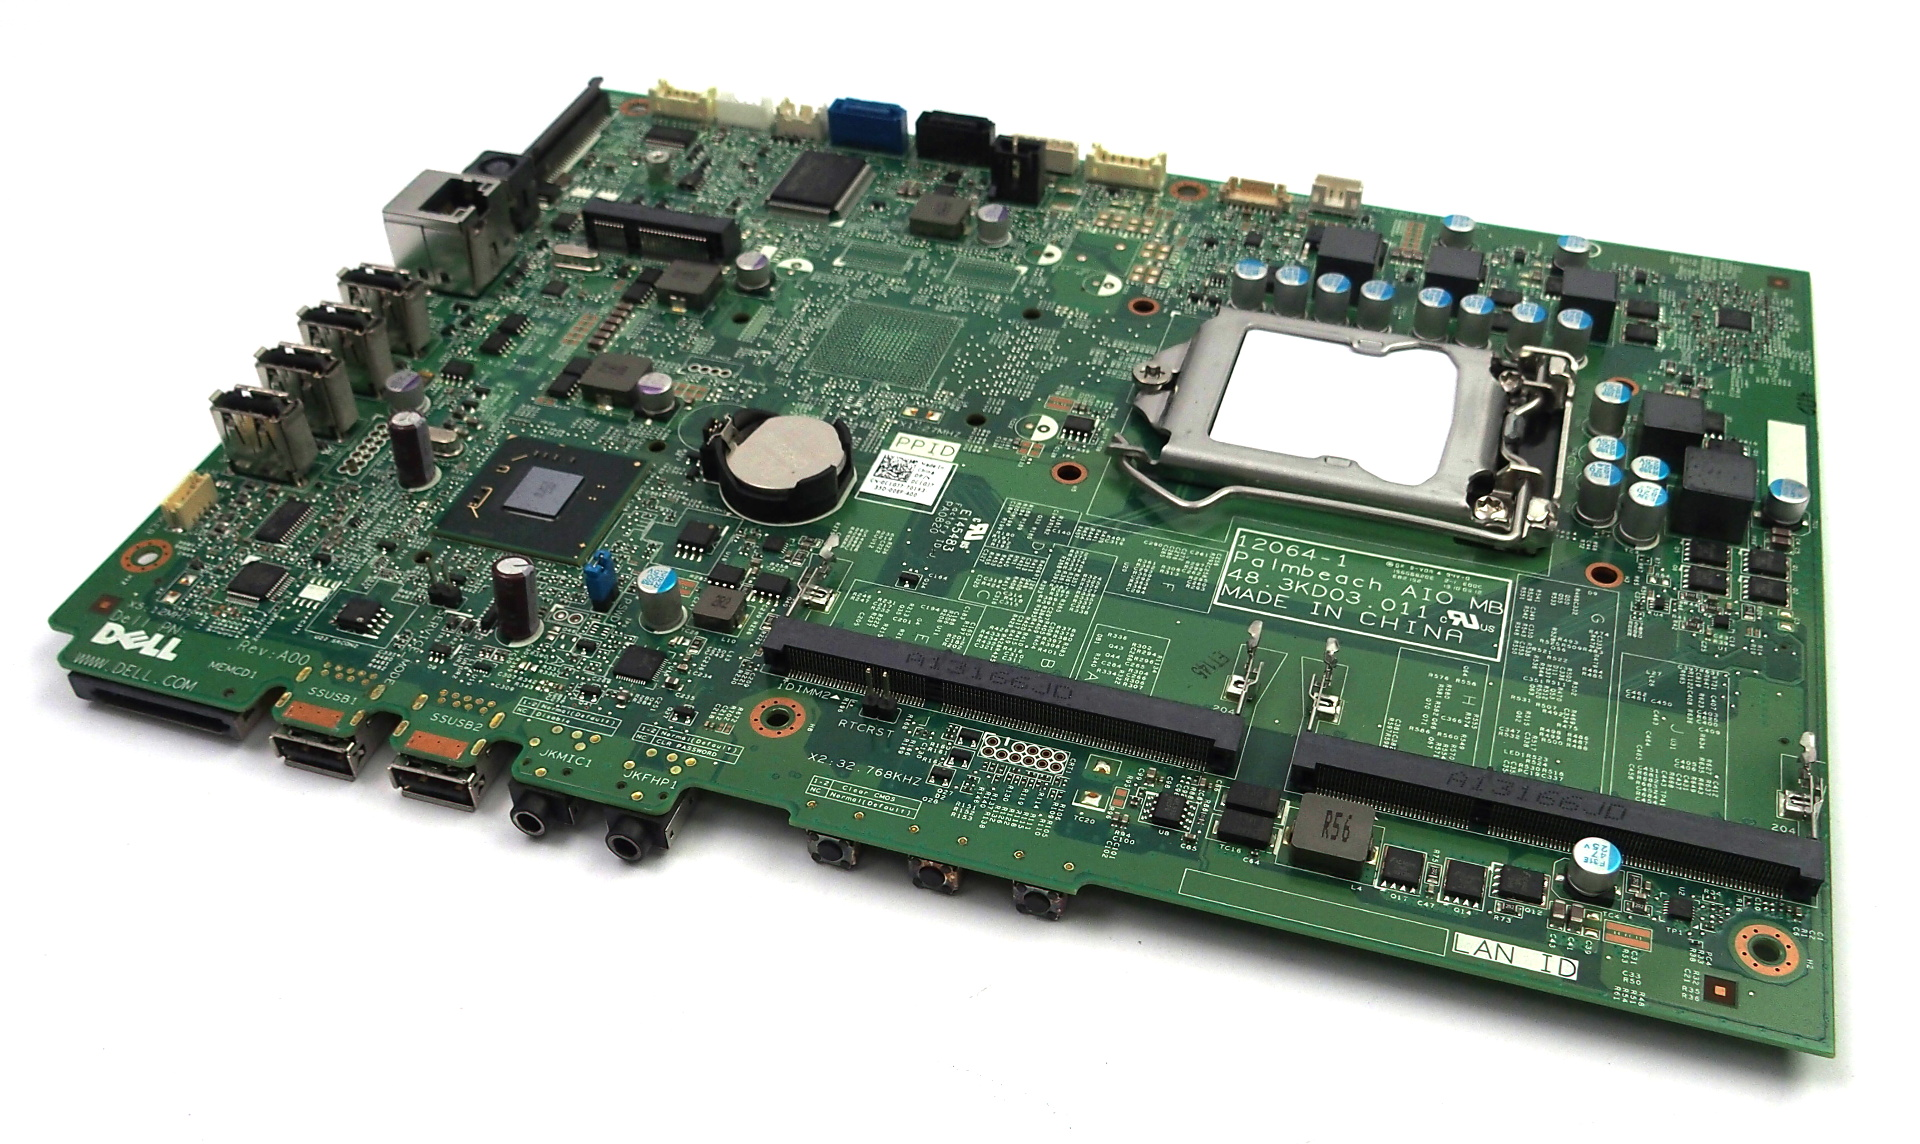 C1GJ7 0C1GJ7 Dell OptiPlex 3011 AIO PC Motherboard